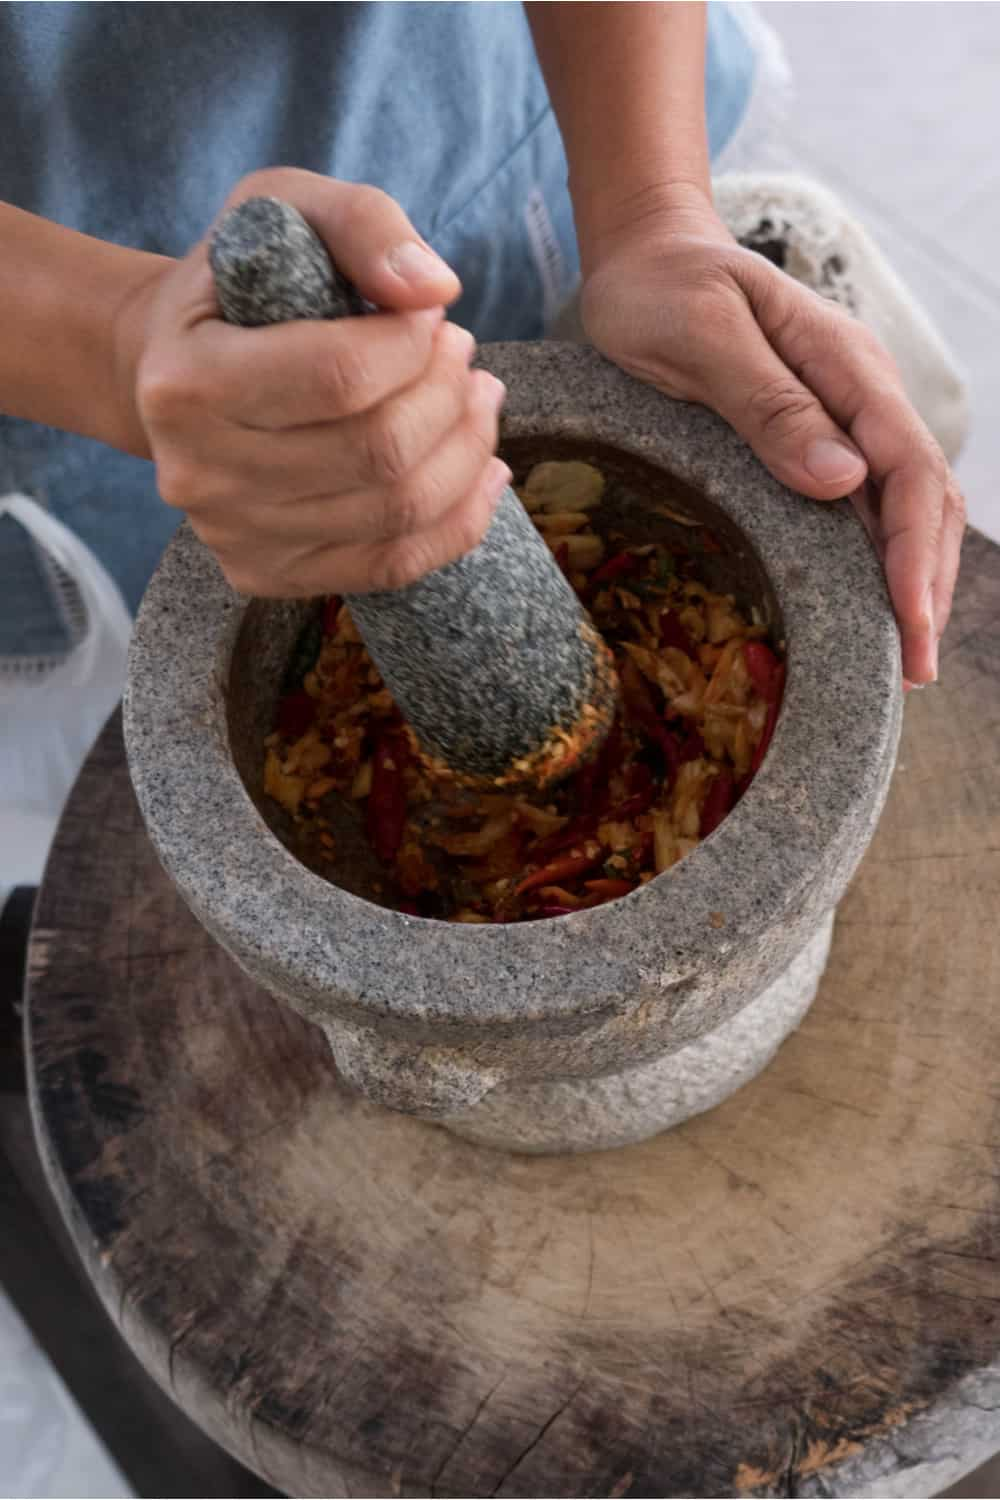 18 Homemade Mortar and Pestle Plans You Can DIY Easily